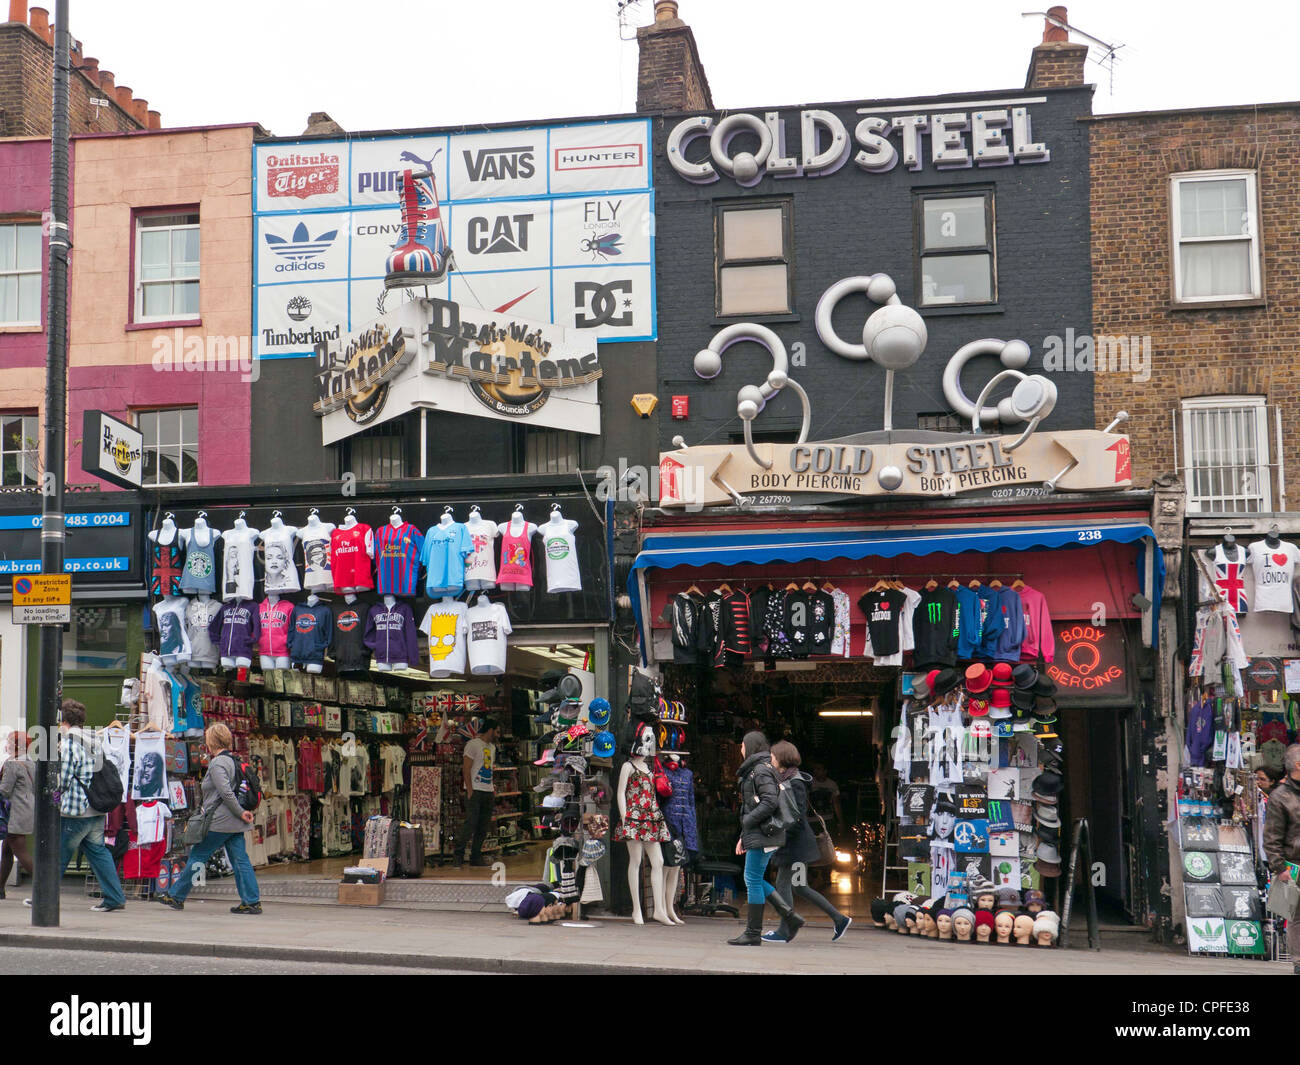 Shoppers and tourists viewing boutiques in a street in Camden Market, London, UK - Stock Image